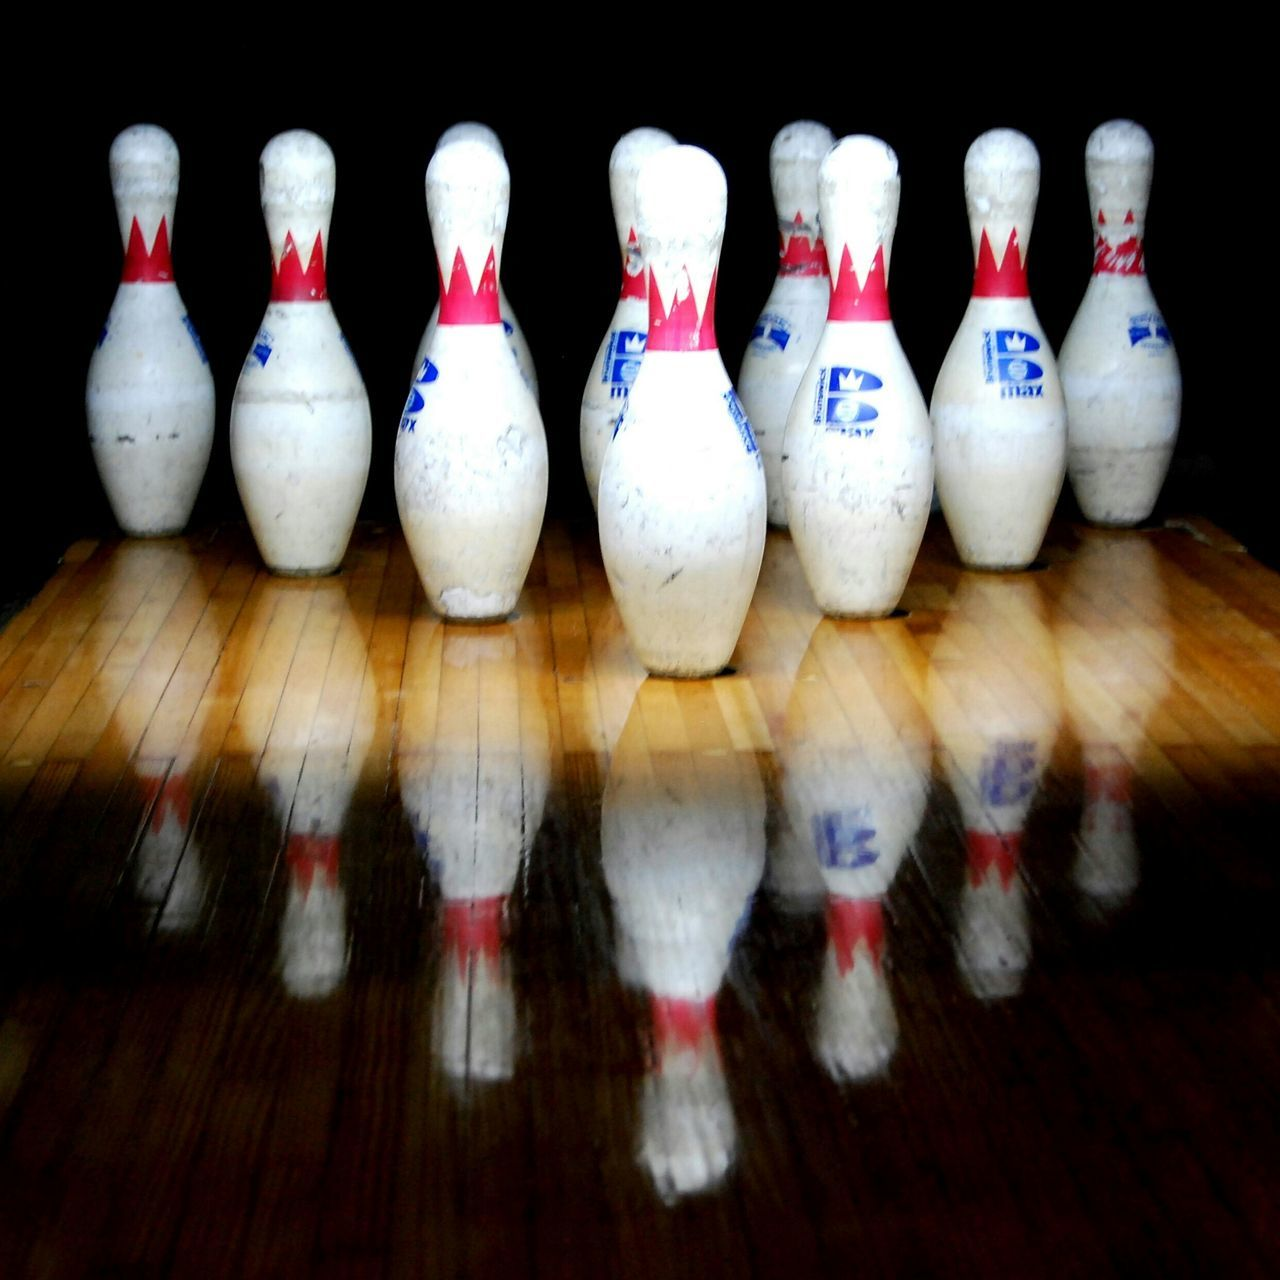 Enjoying Life Getting Inspired Hanging Out ASIA Bowling Reflection Smart Simplicity Reflected Glory